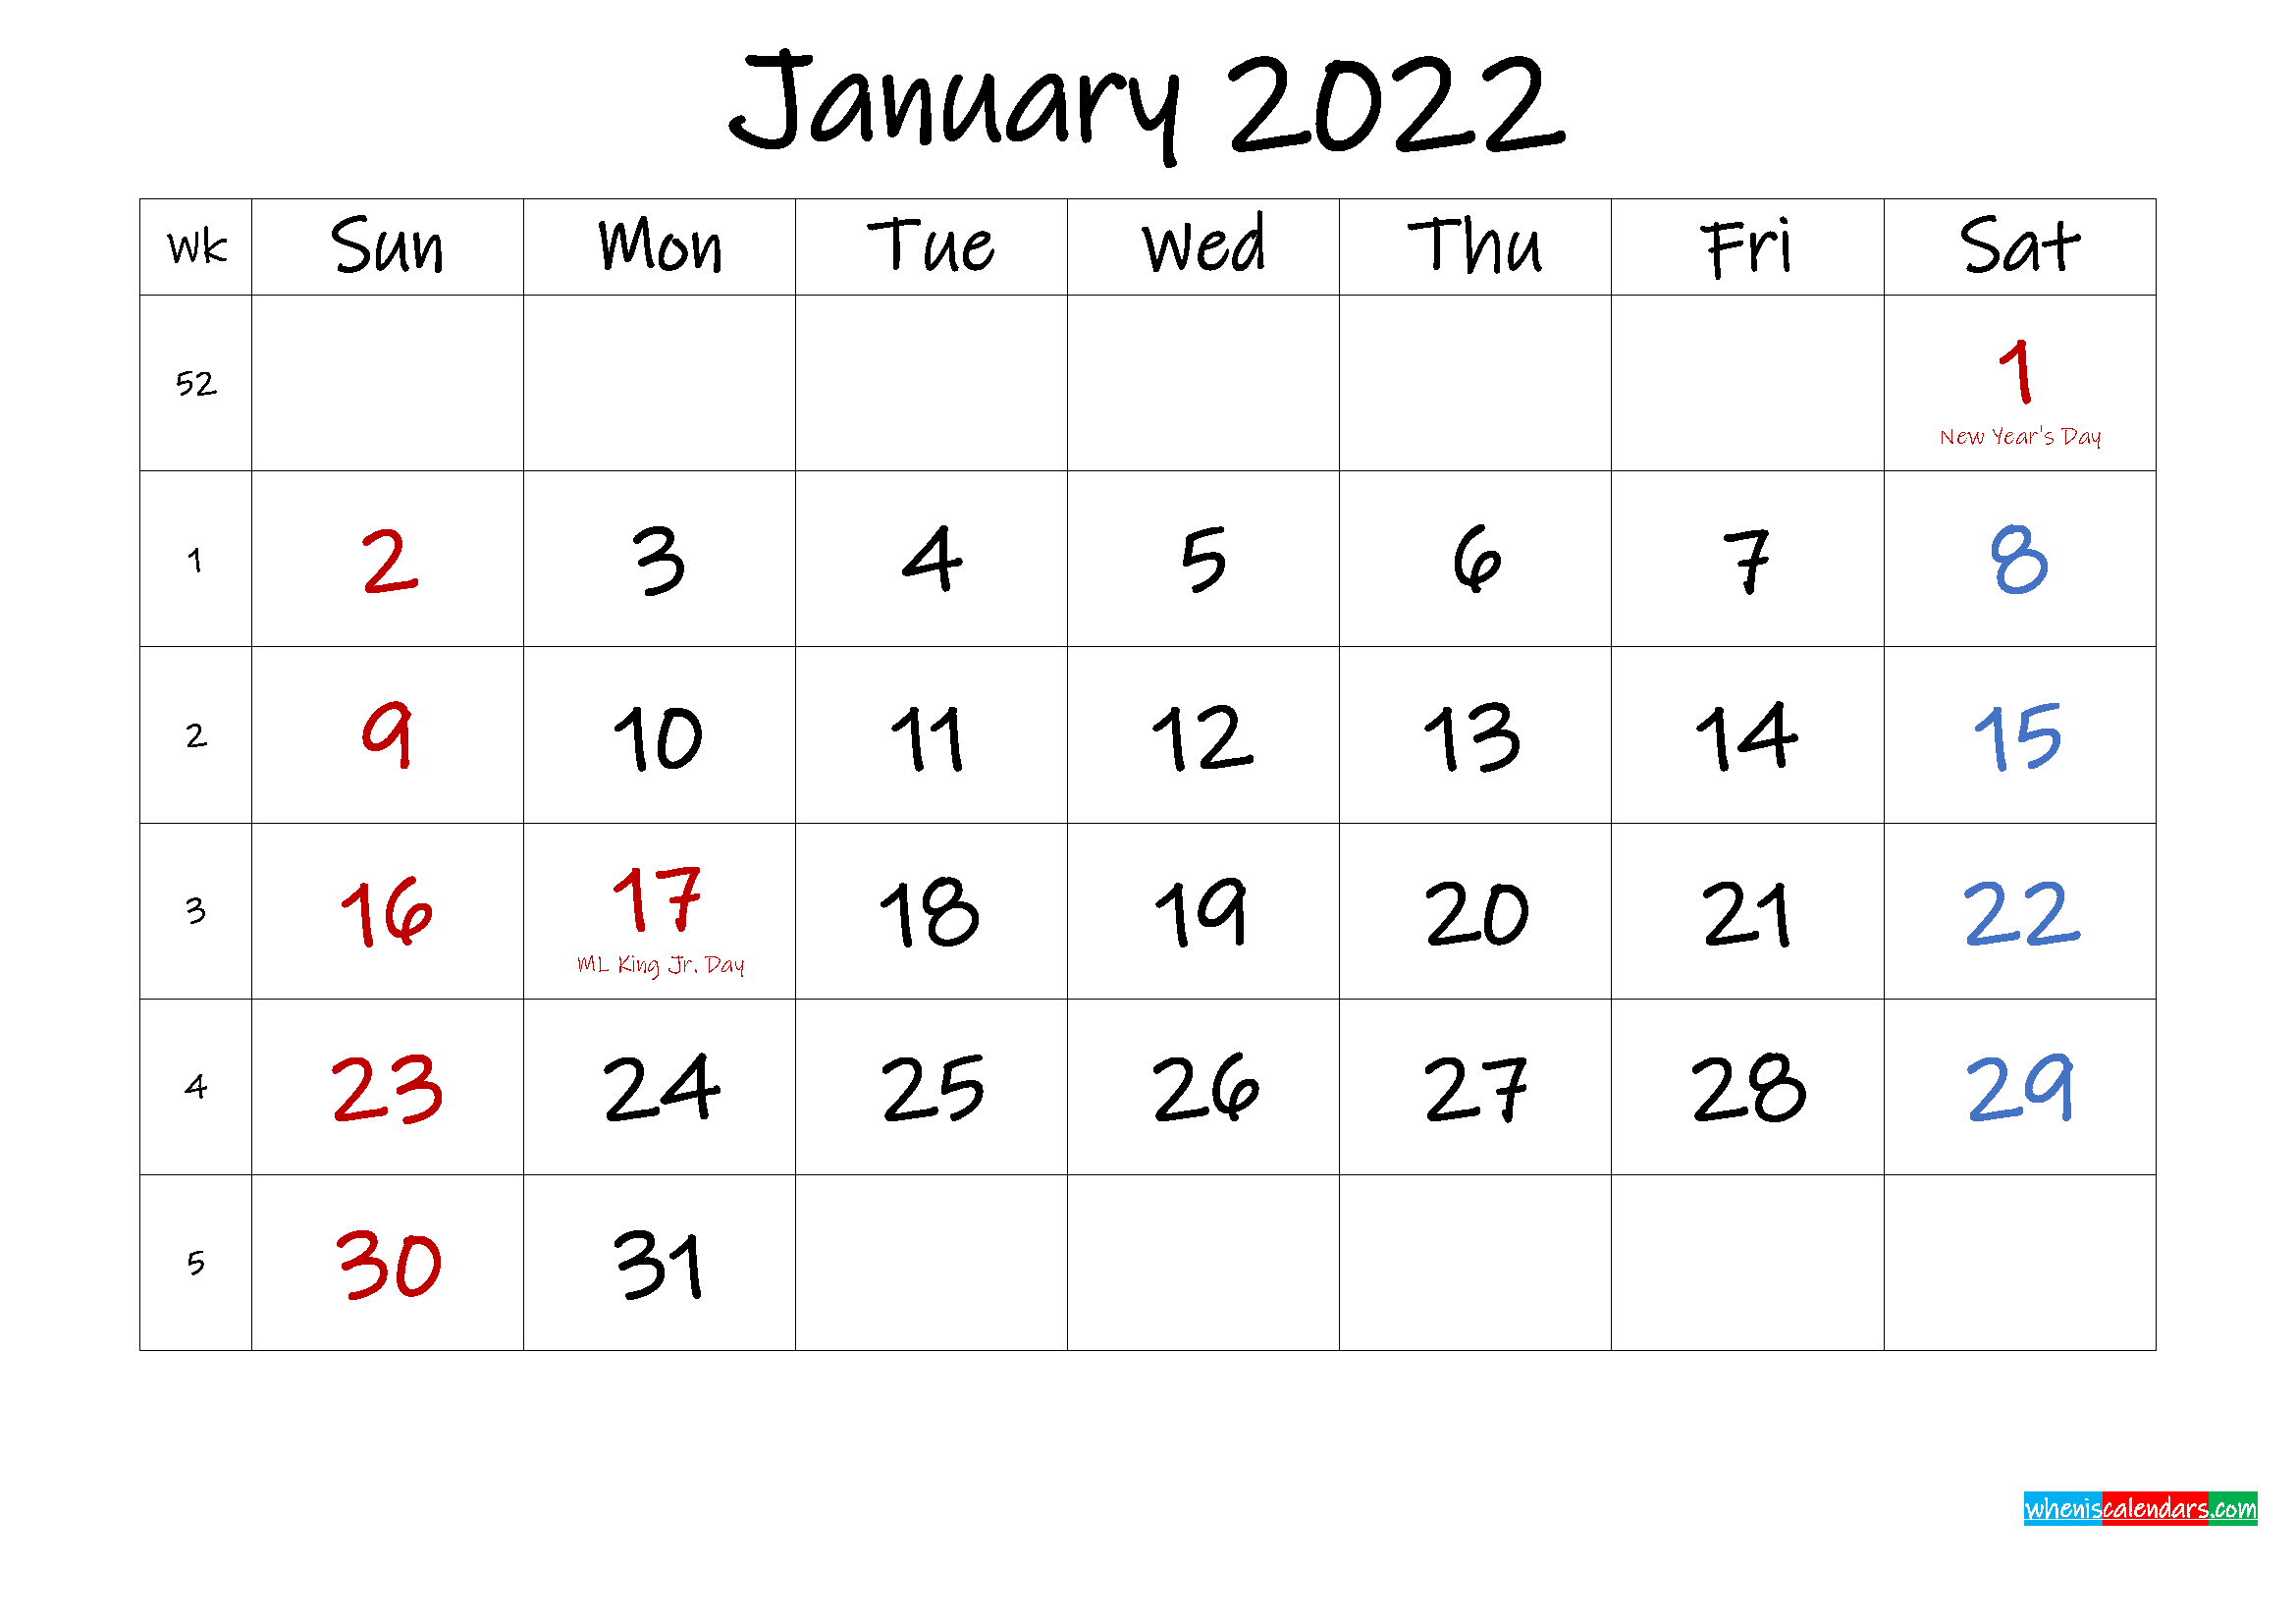 January 2022 Free Printable Calendar with Holidays ...